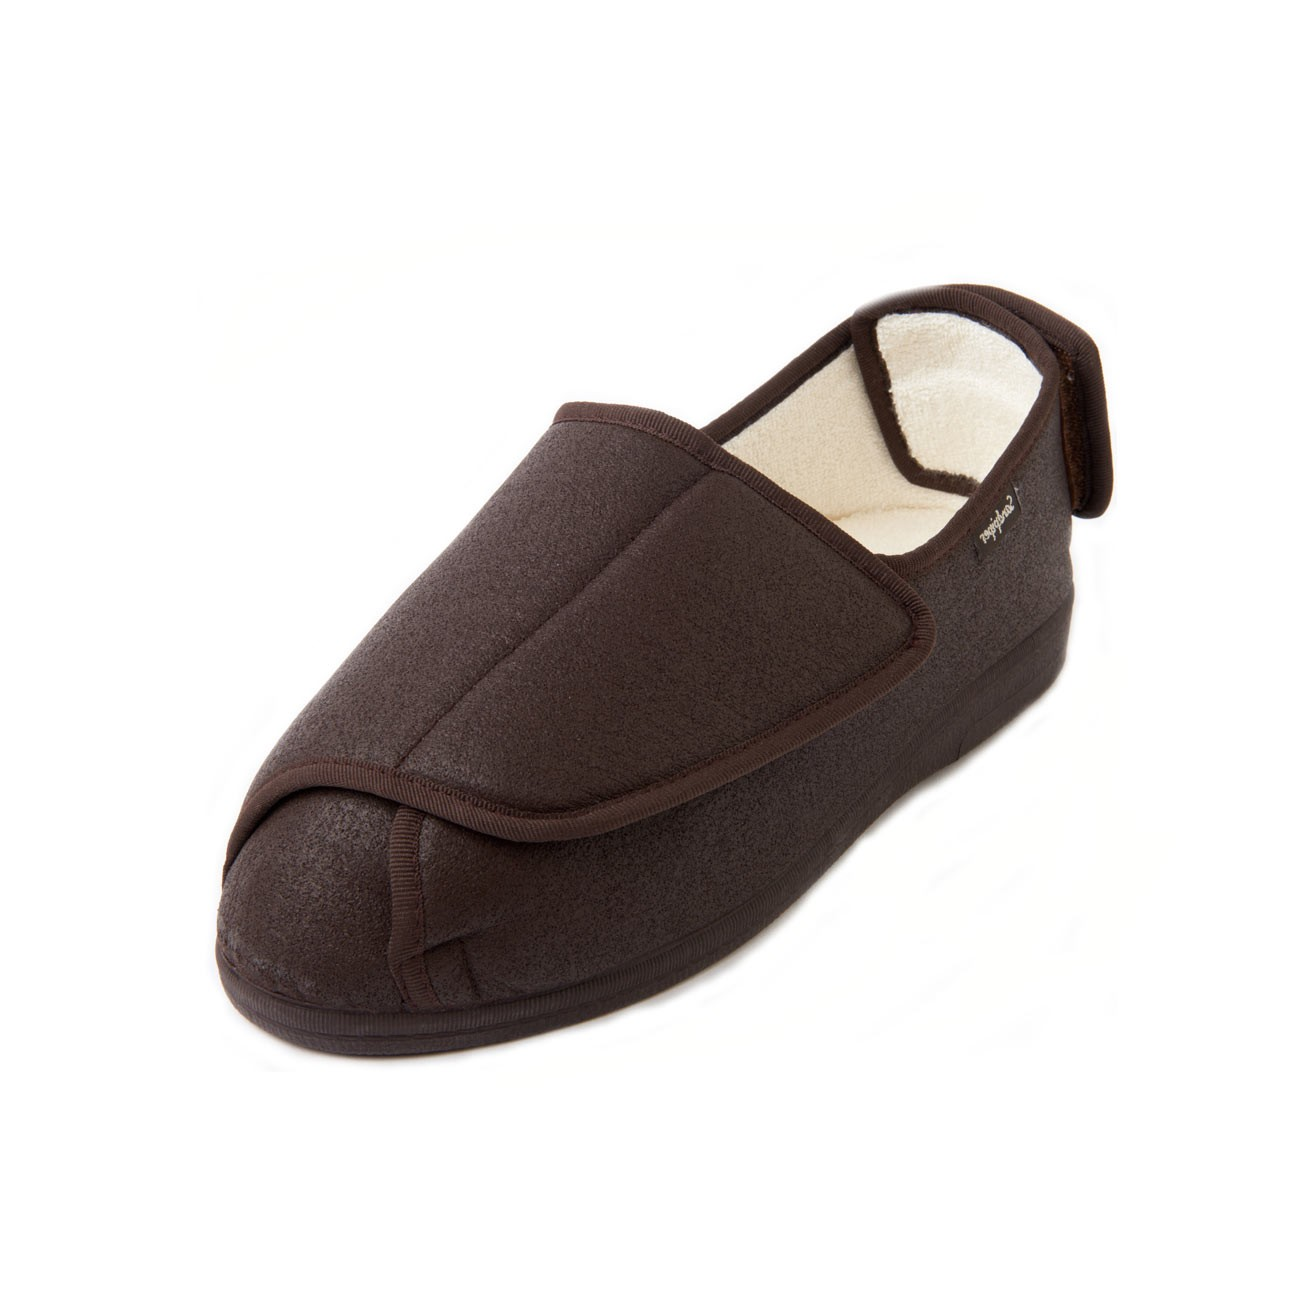 Wesley Extra Wide Men's Slipper and men's wide fitting slippers